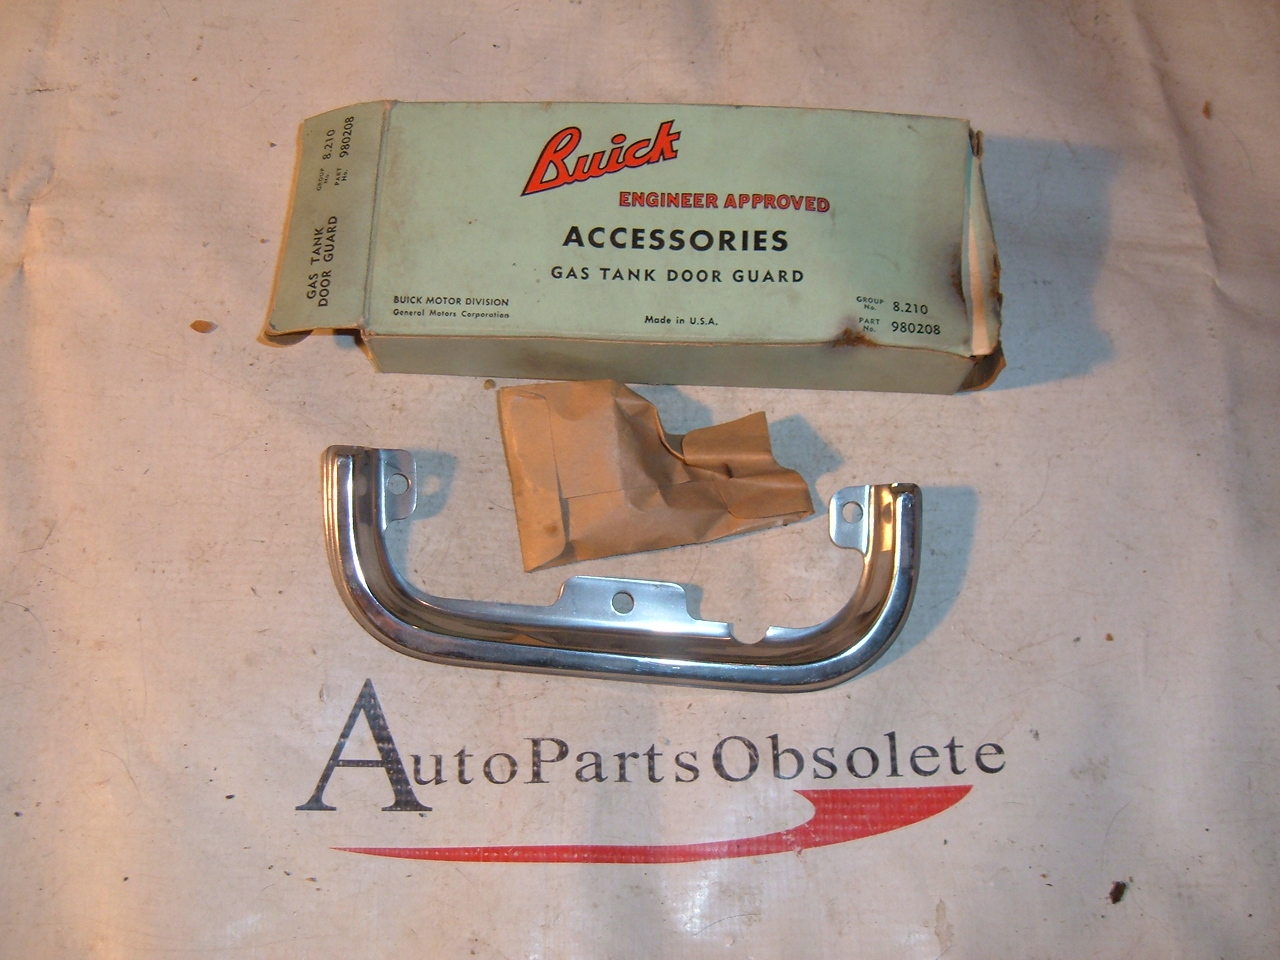 Buick Special Skylark Gs Parts 1968 1969 70 71 72 Gsx Electra Lesabre Wiring 1961 1962 Gas Lid Fuel Door Guard 980208 Z